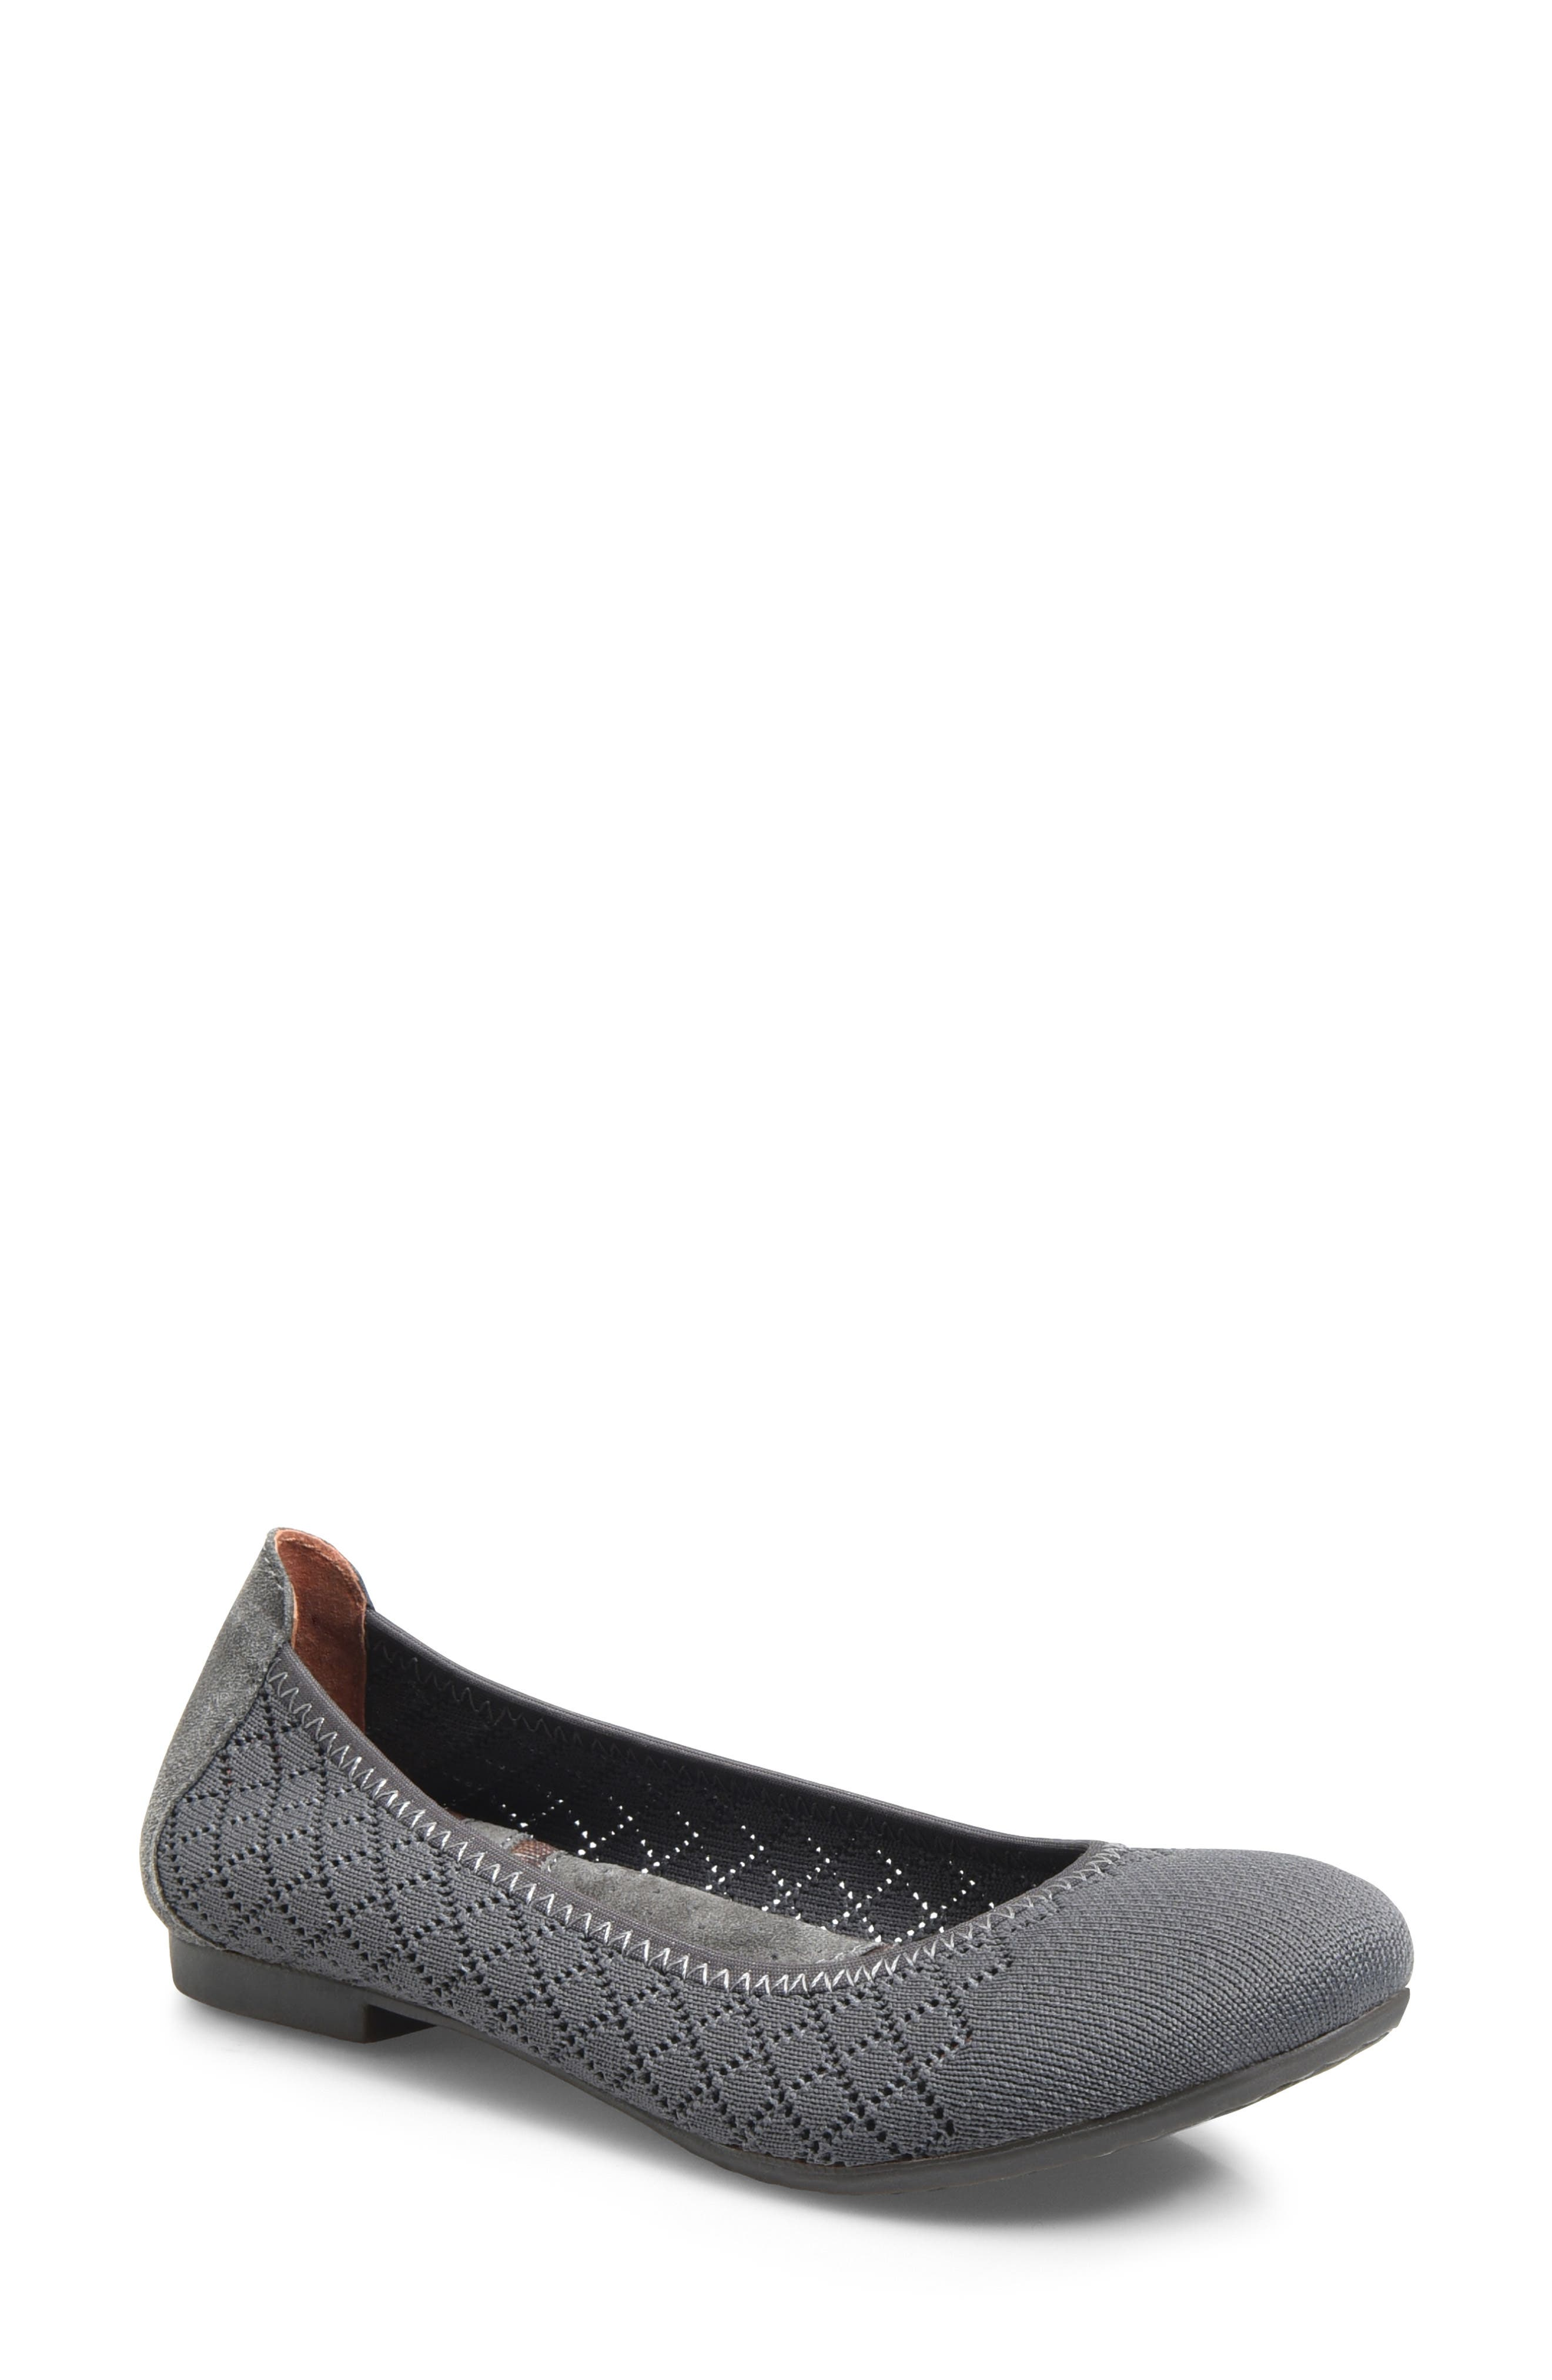 Julianne Knit Flat,                         Main,                         color, GREY KNIT FABRIC